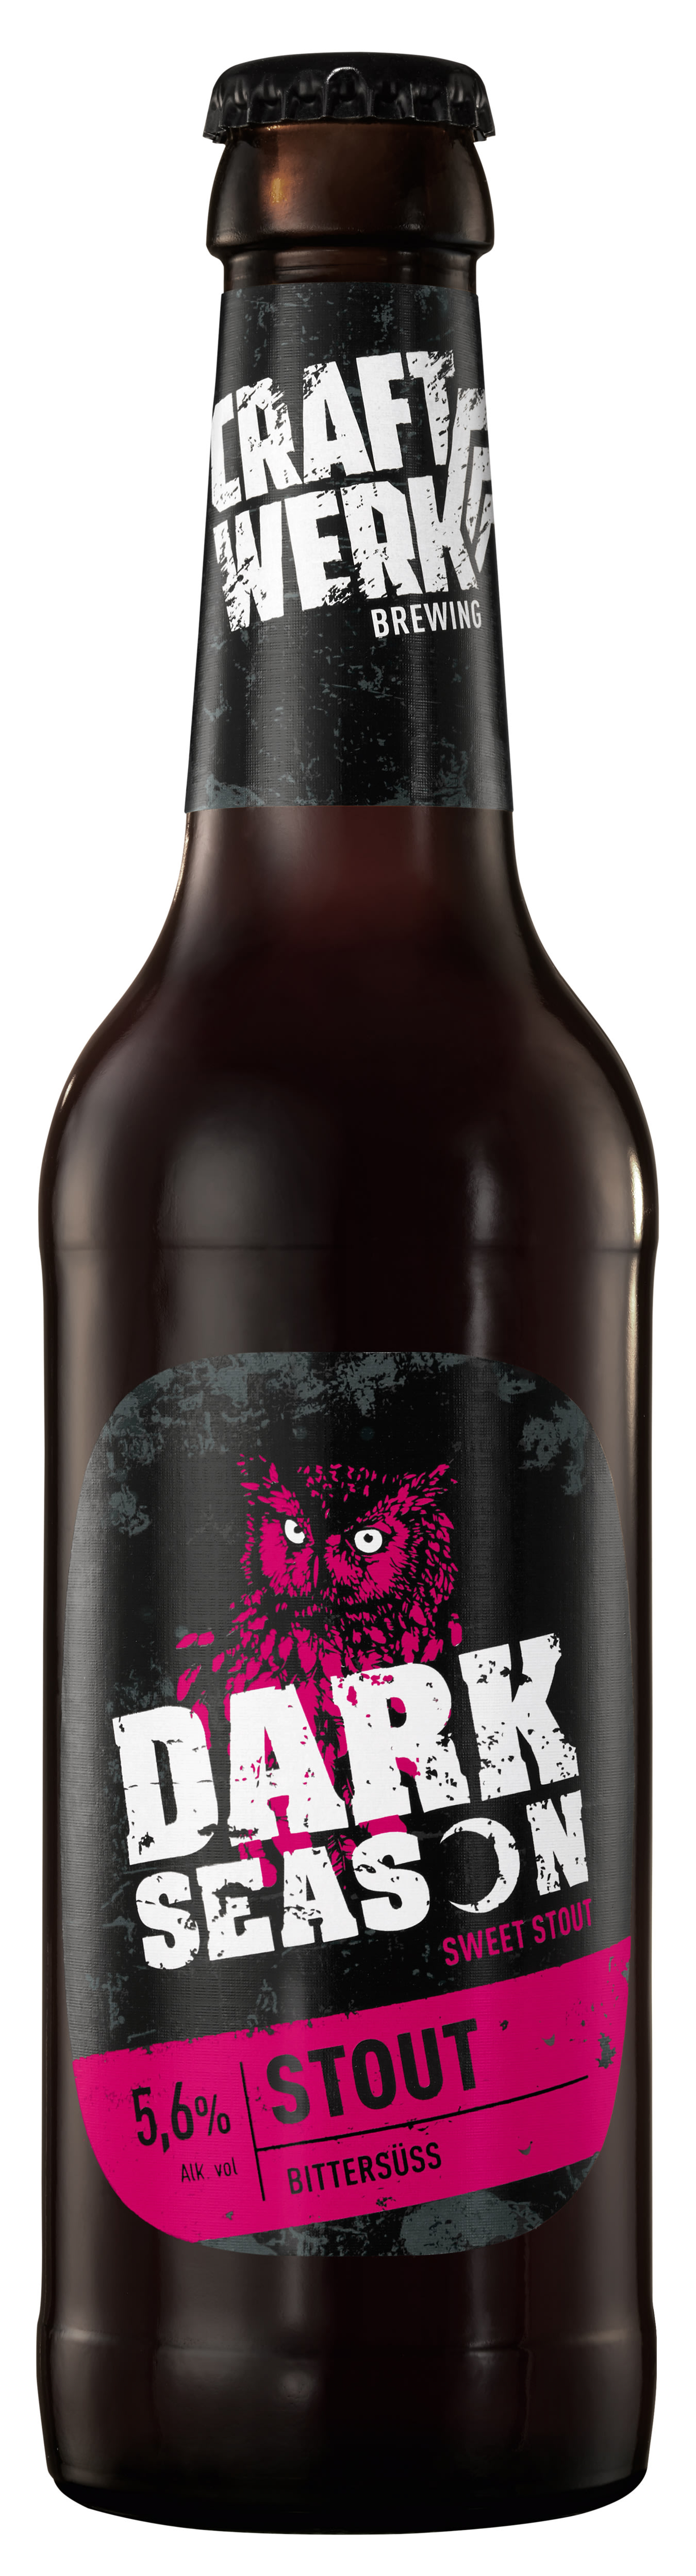 Craftwerk Brewing Dark Season 0,33 l Glas Mehrweg